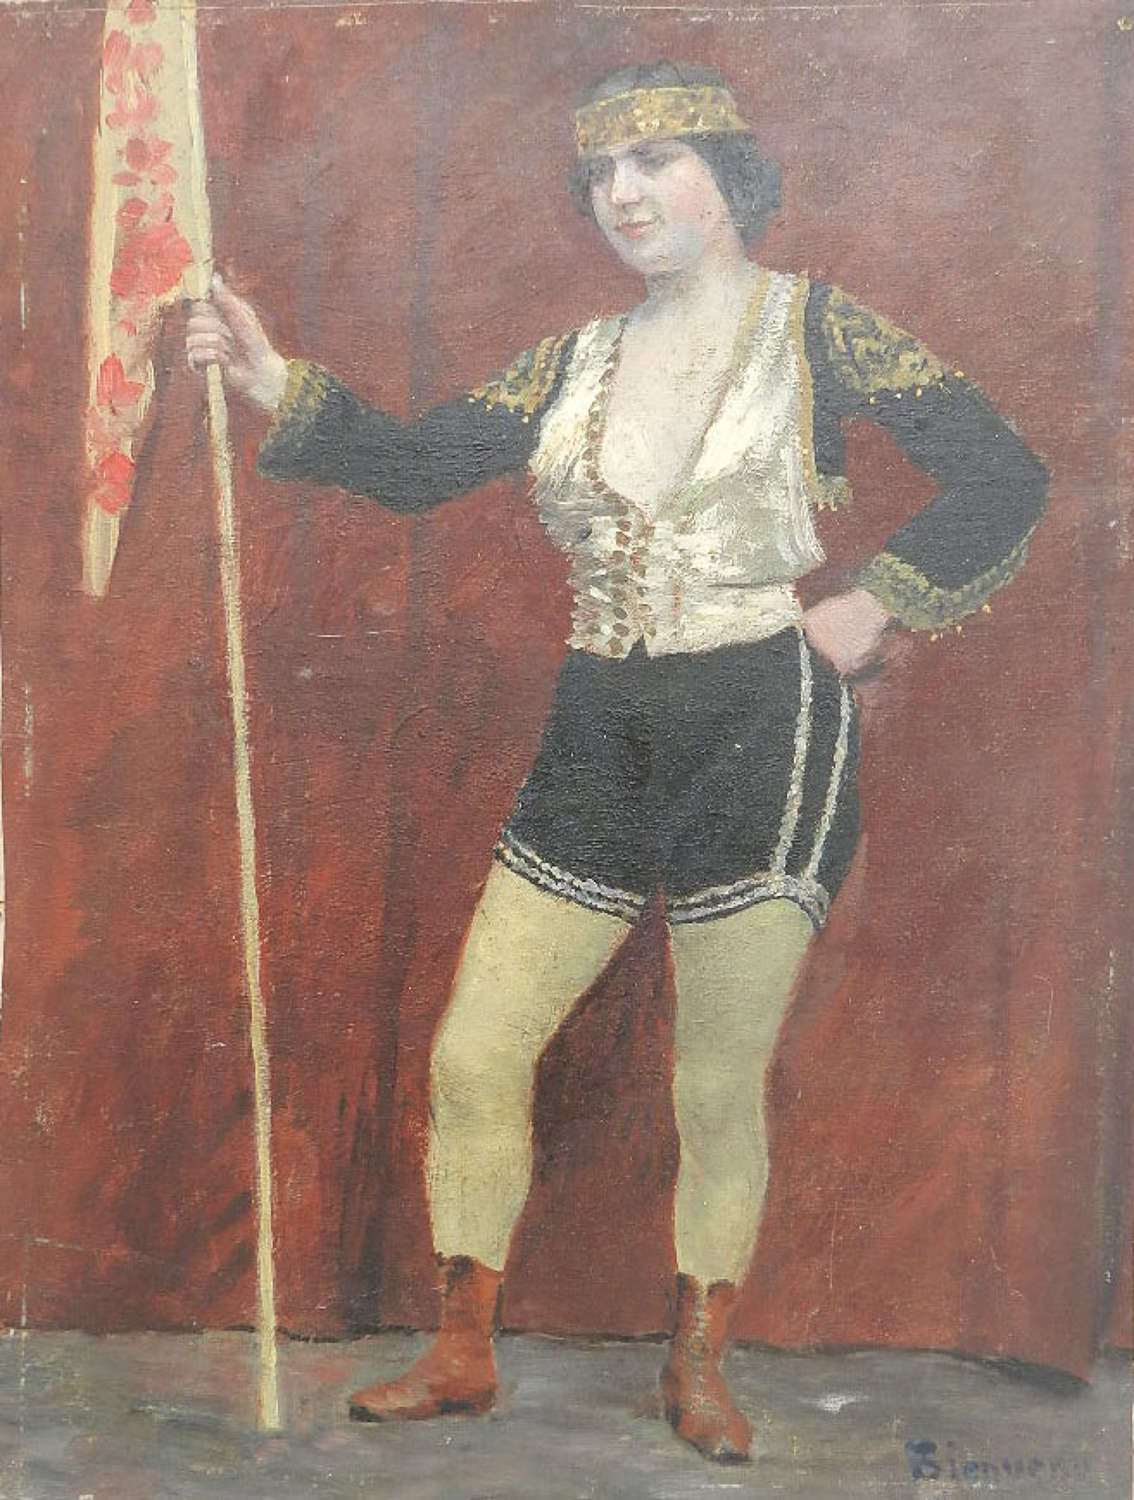 Early C20 Oil Painting signed Bienvenu Fairground Circus Lady Performer French Italian